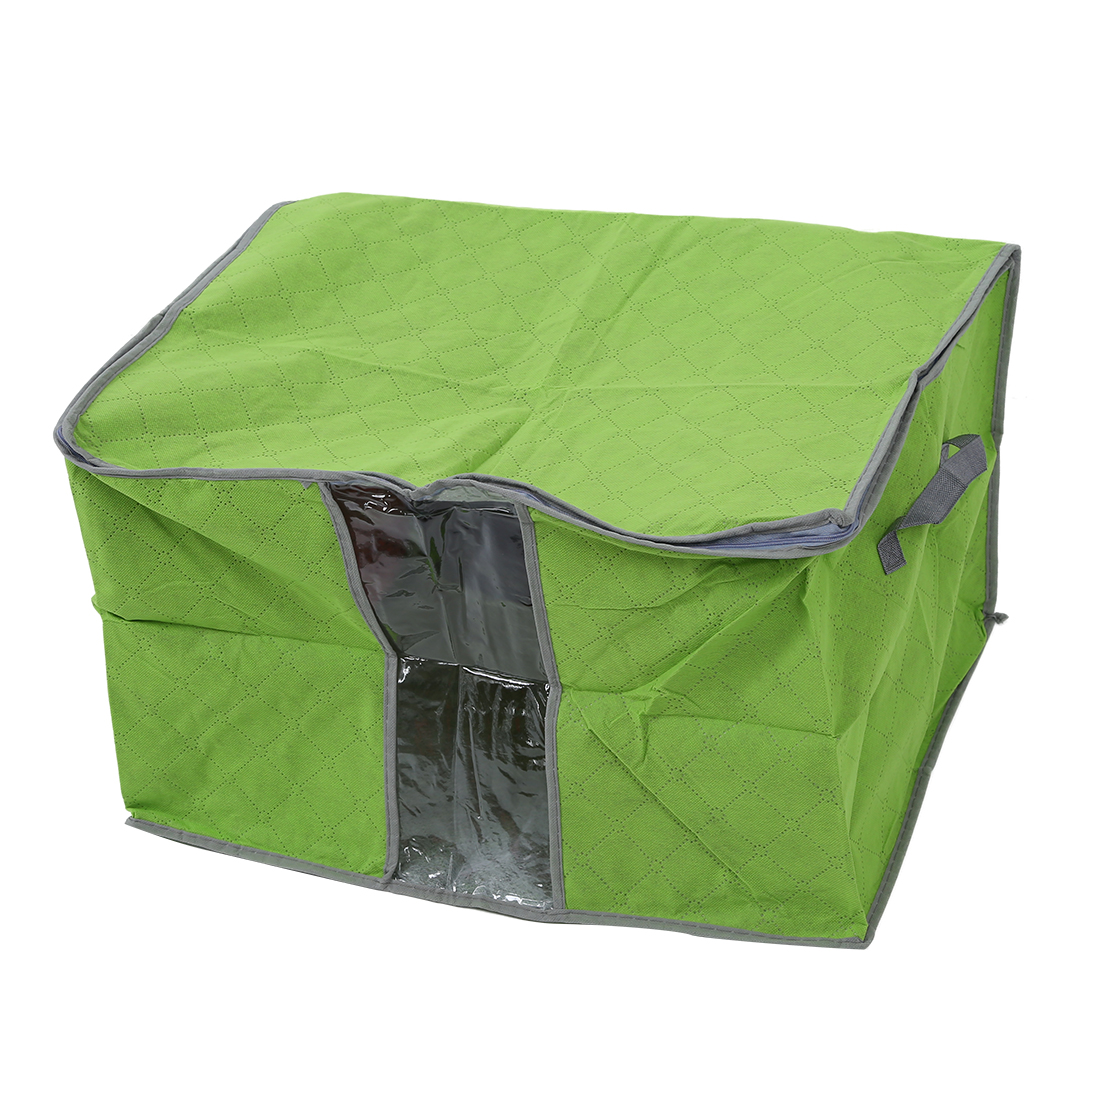 SODIAL Green Quilt Blanket Pillow Under Bed Storage Bag Box Container Non-woven Fabric